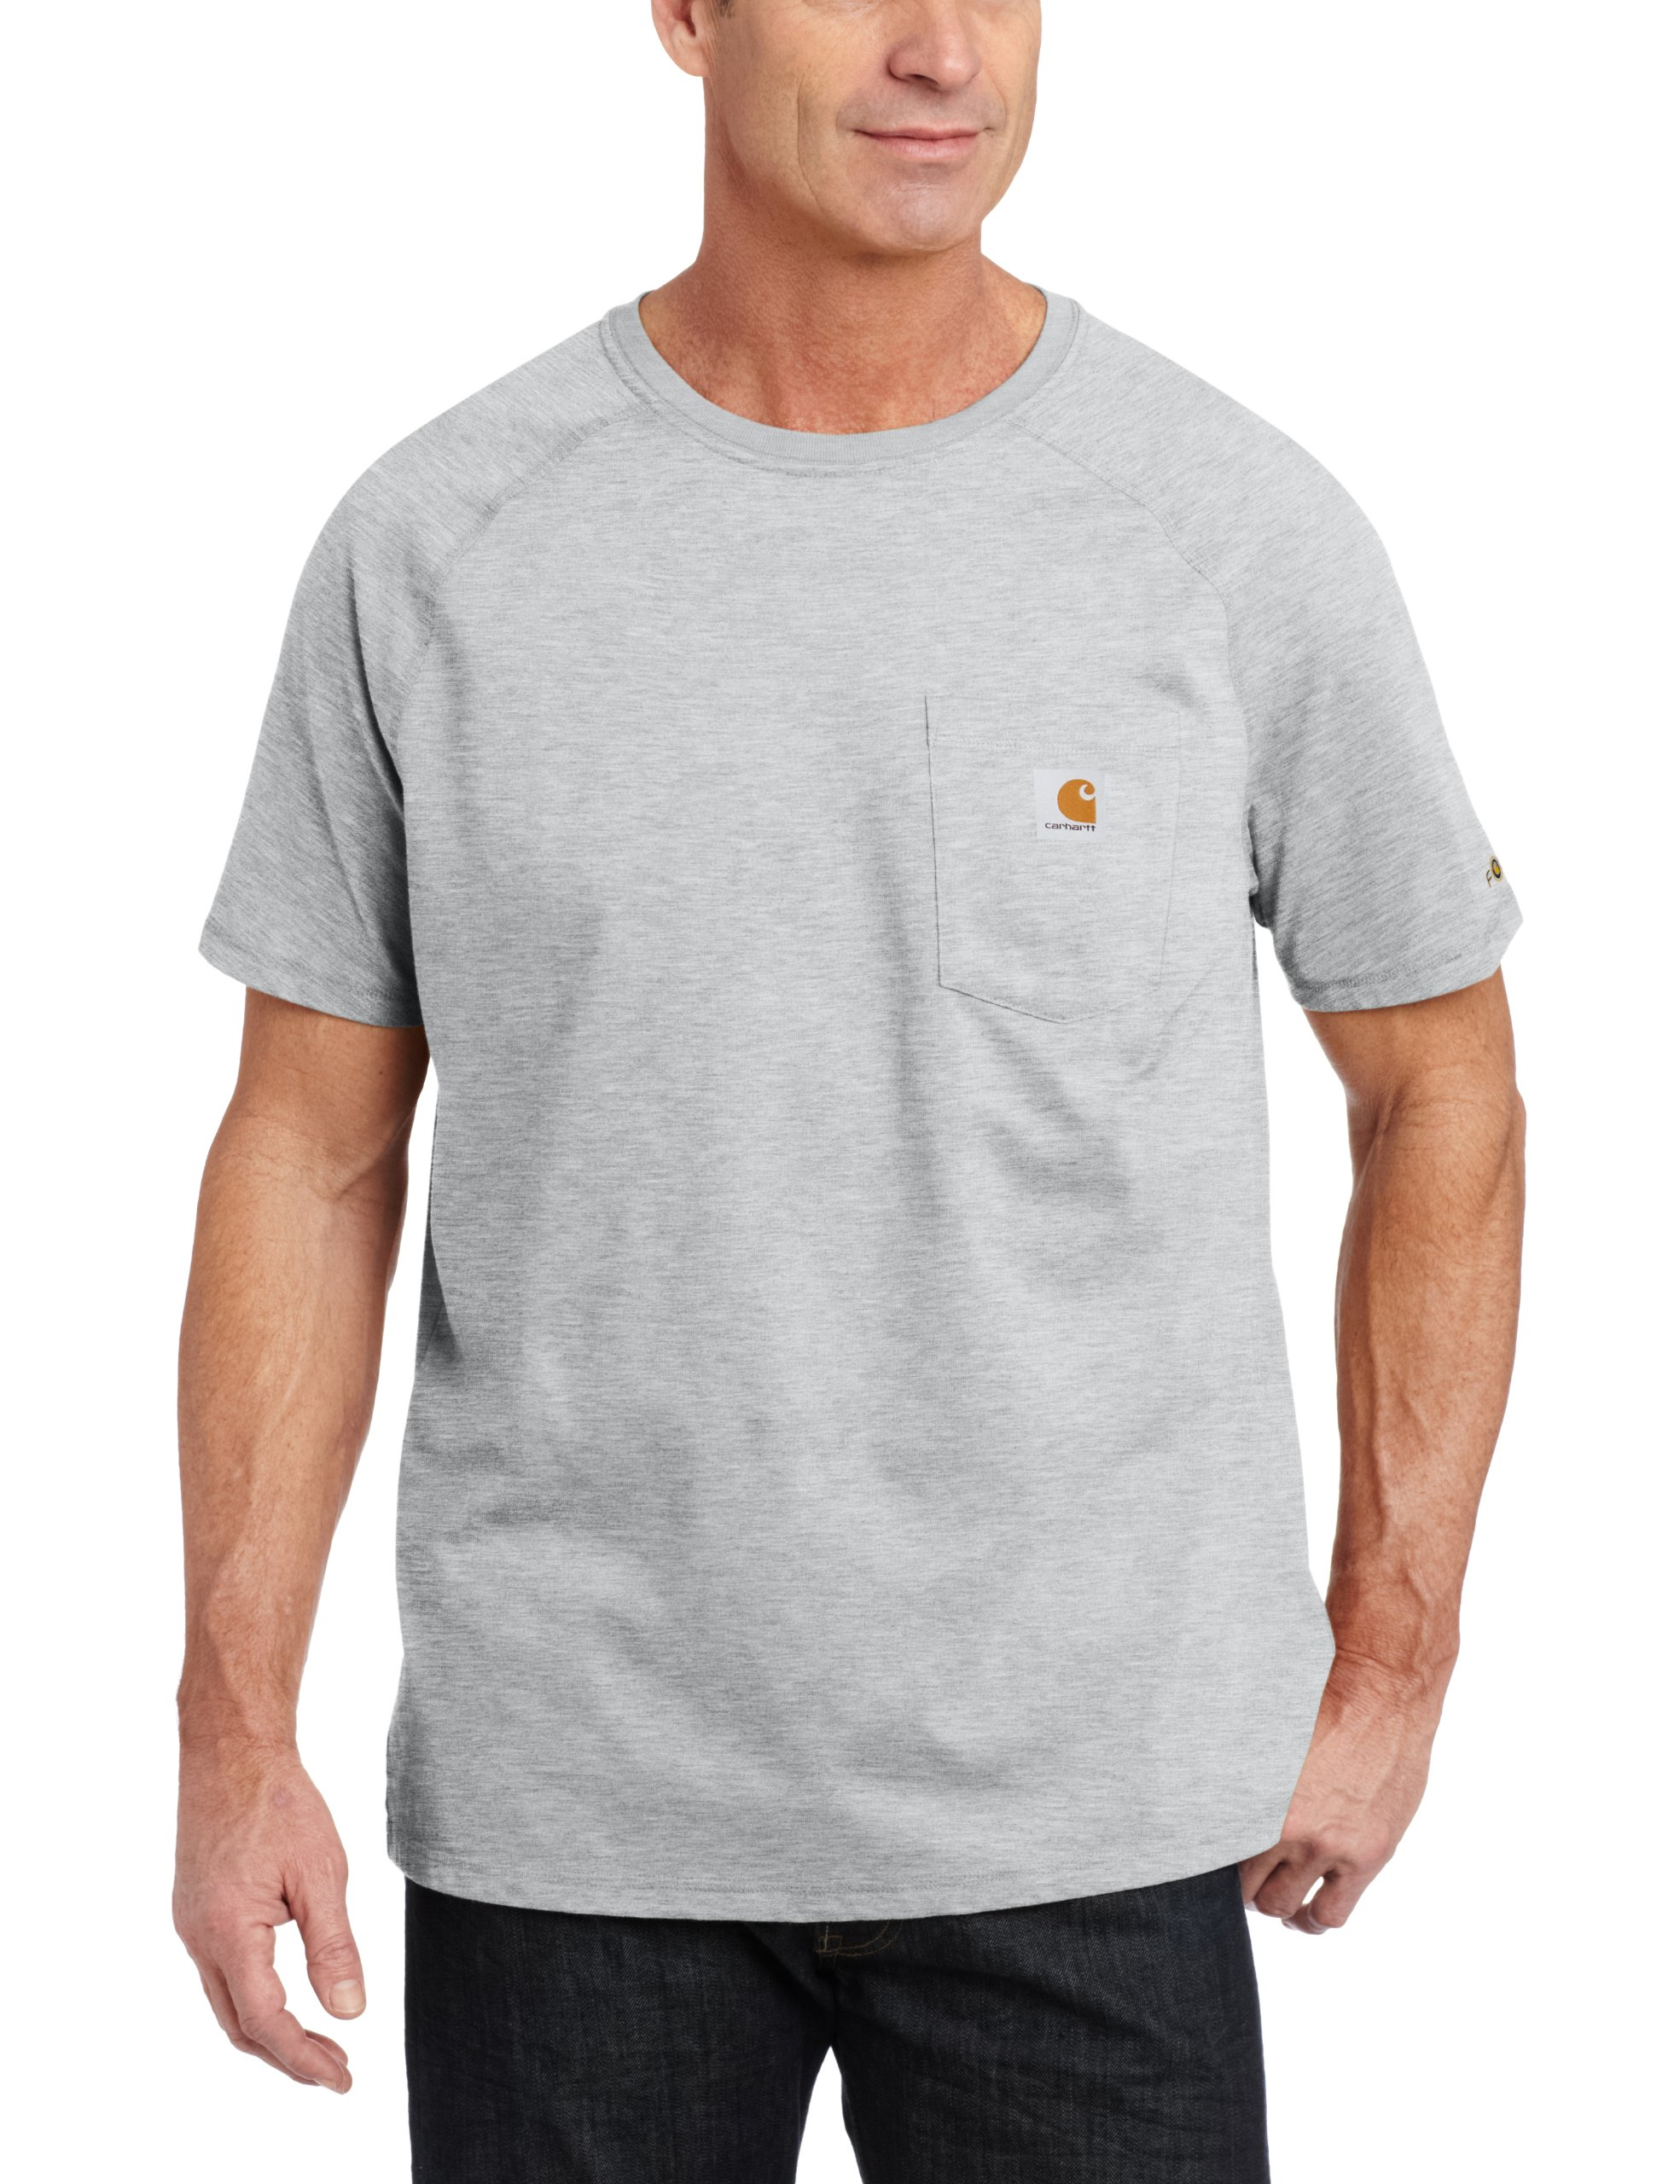 Regular and Big /& Tall Sizes Carhartt Mens Big Force Cotton Delmont Short Sleeve T-Shirt White 3X-Large Tall